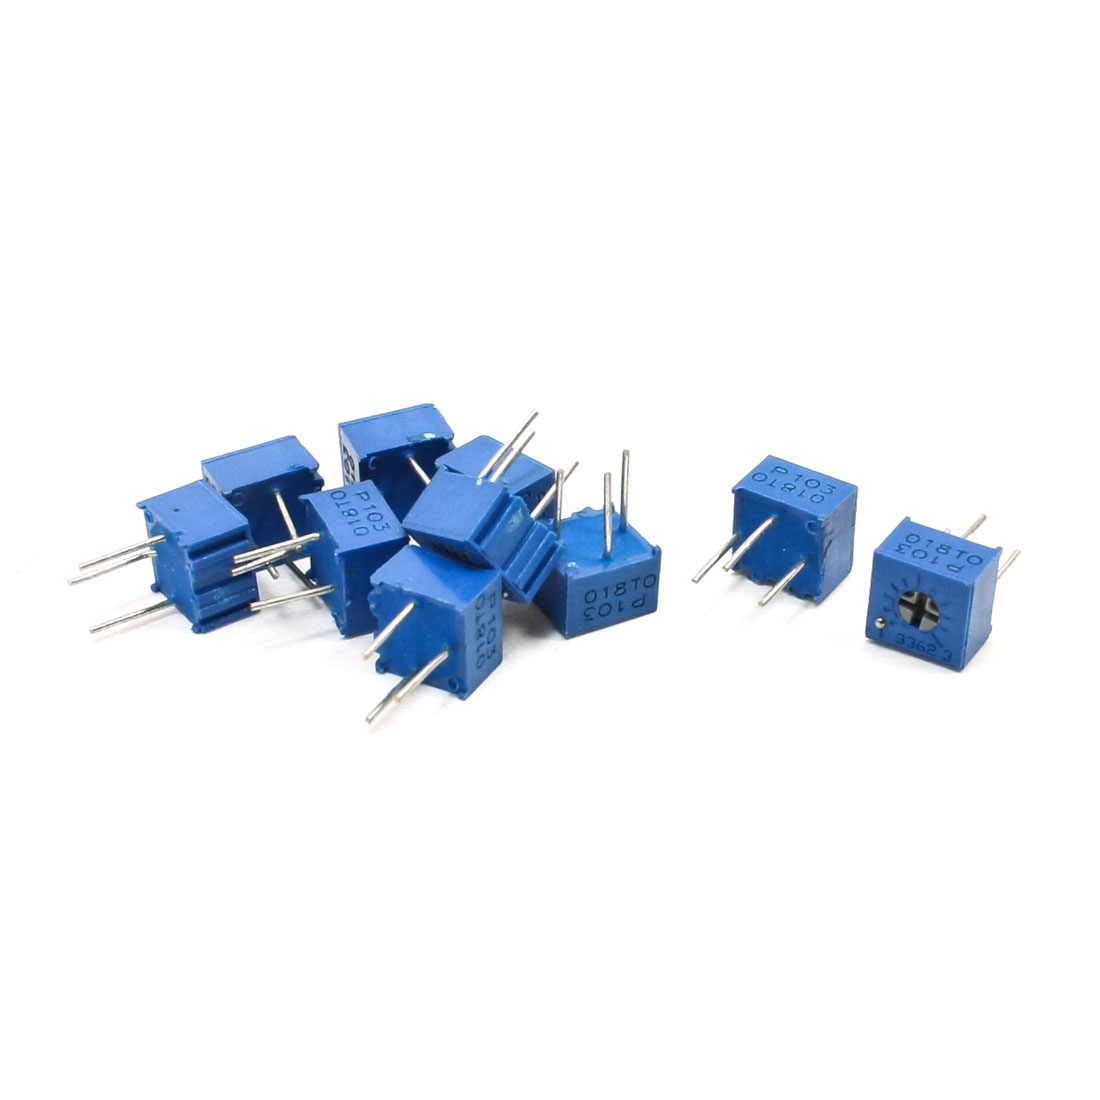 10K Ohm 3362P Top Adjustment Single Turn Cermet Potentiometer 10 Pcs